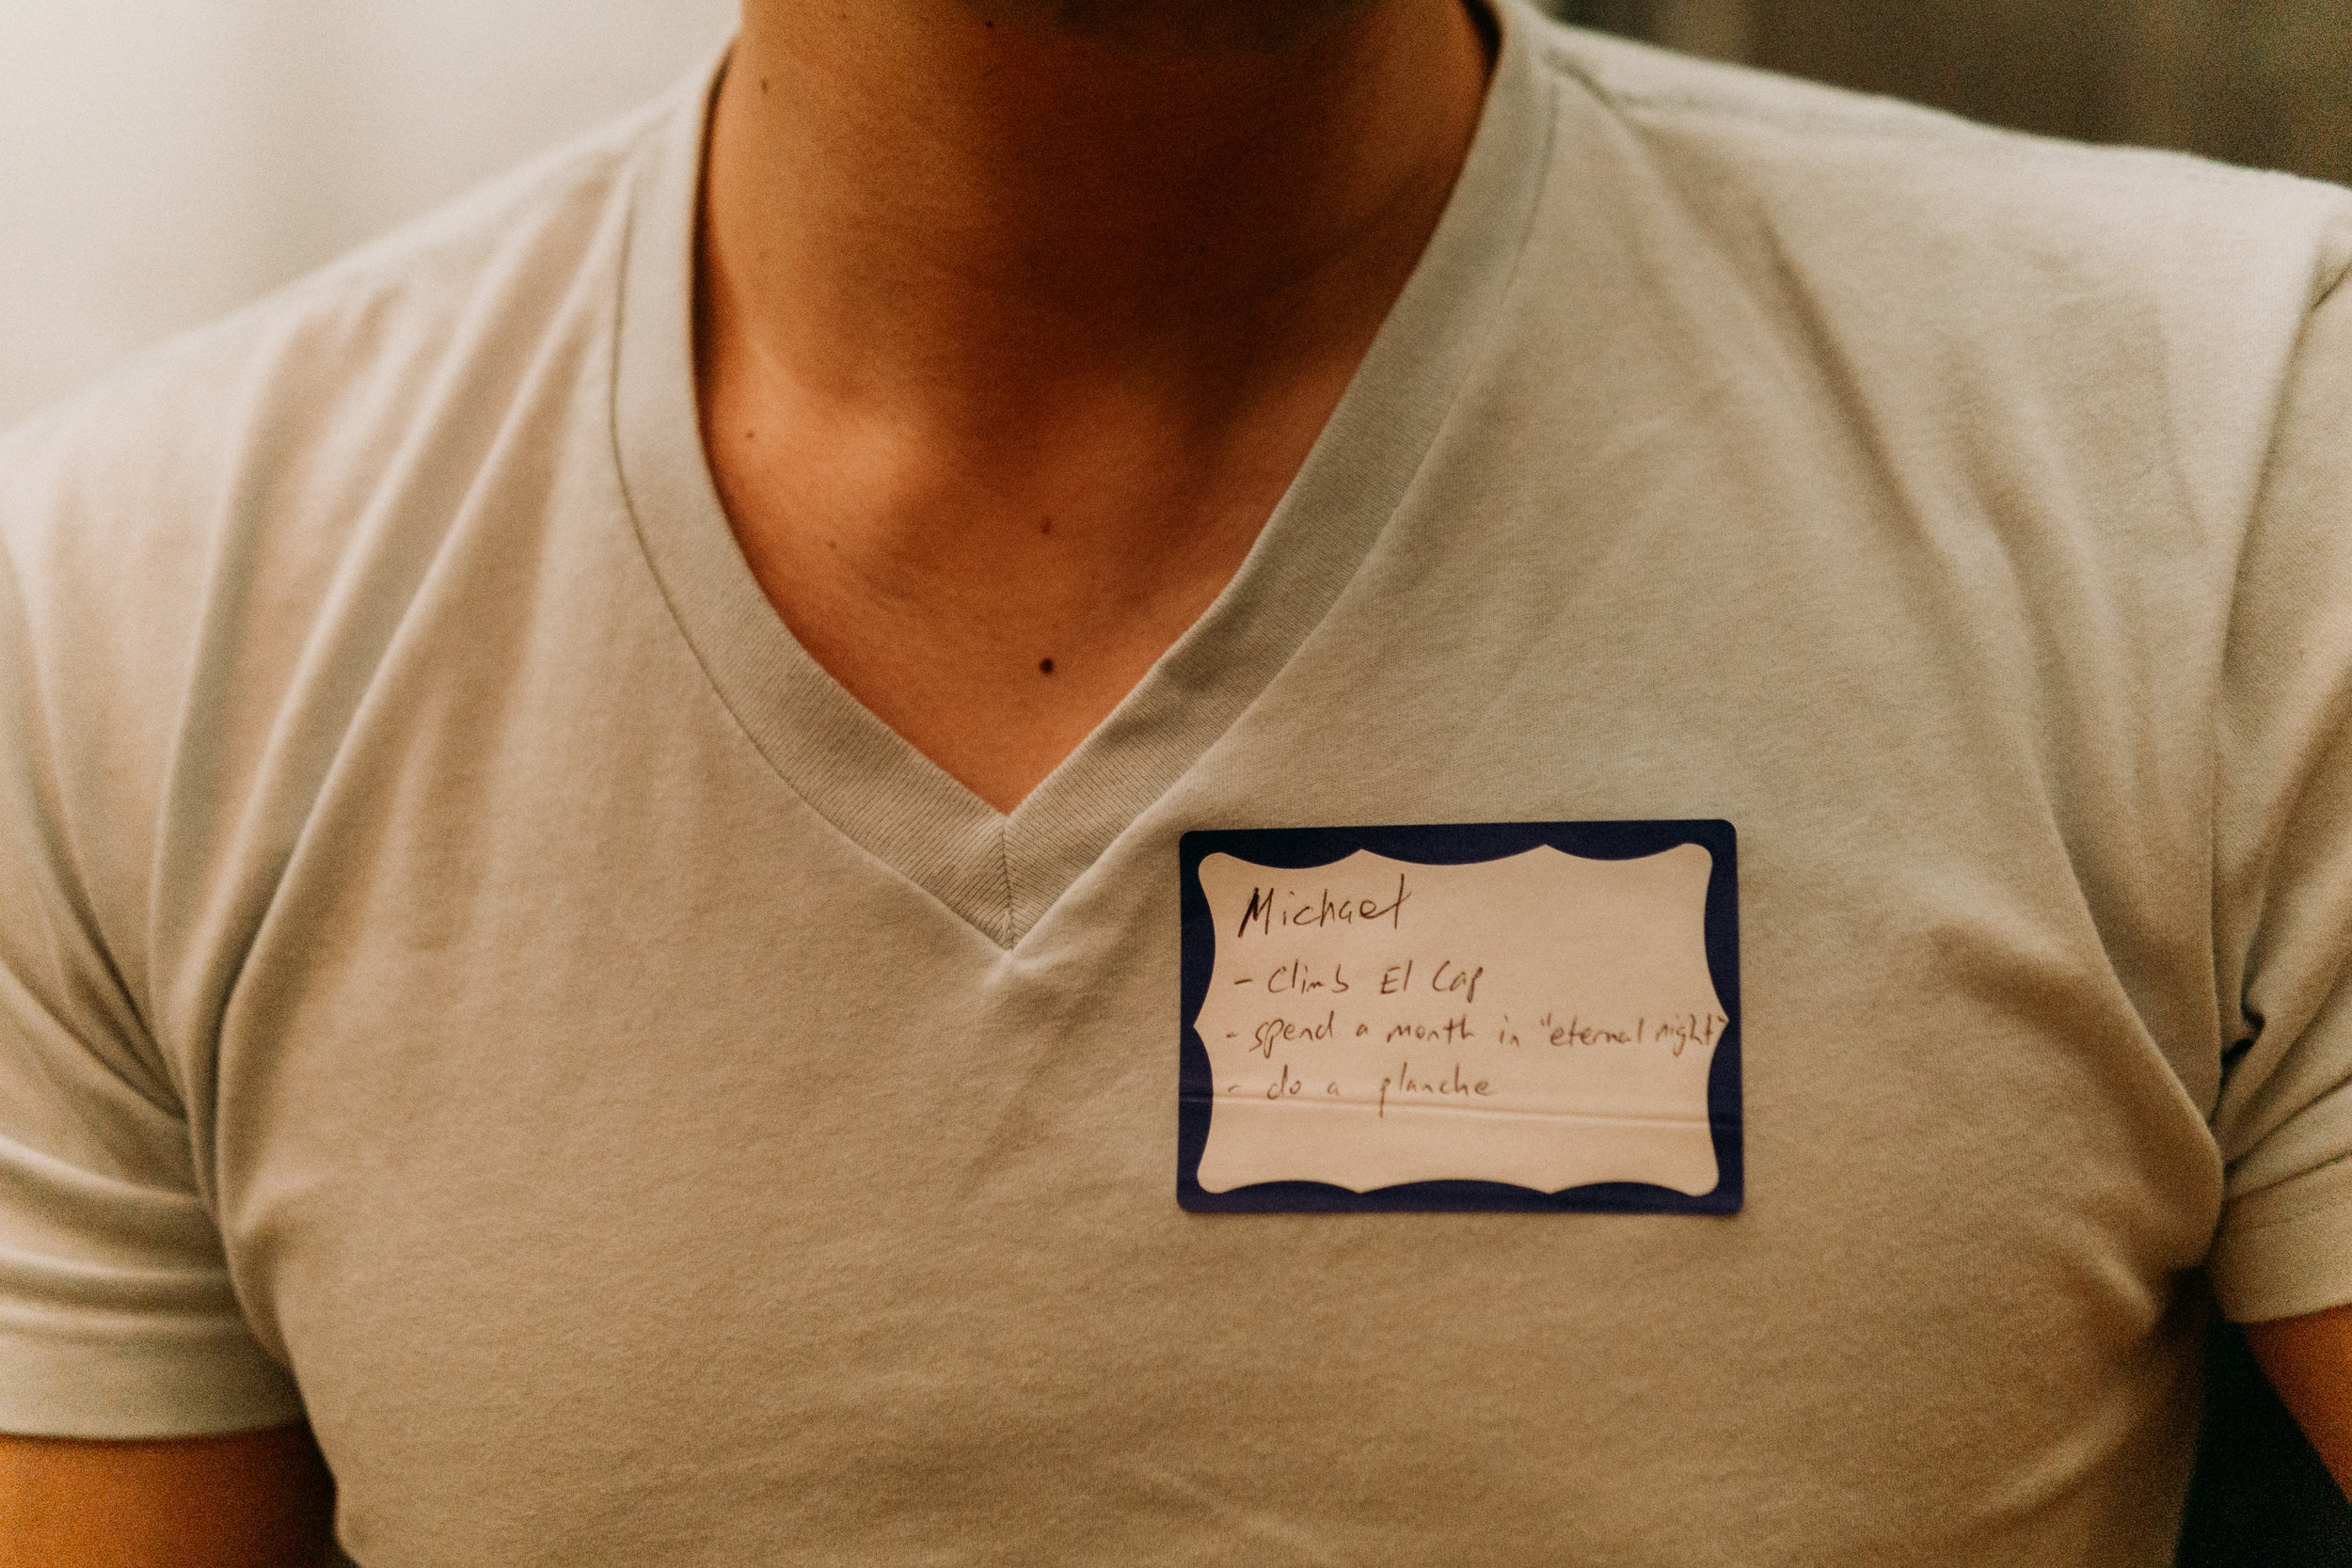 """To break the ice, participants are asked to write three things from their bucket list on their name tag. Michael's """"climb El Cap"""" """"spend a month in 'eternal night'"""" and """"do a planche"""" are just some examples of the amazing things Brooklynites want to do before they die."""